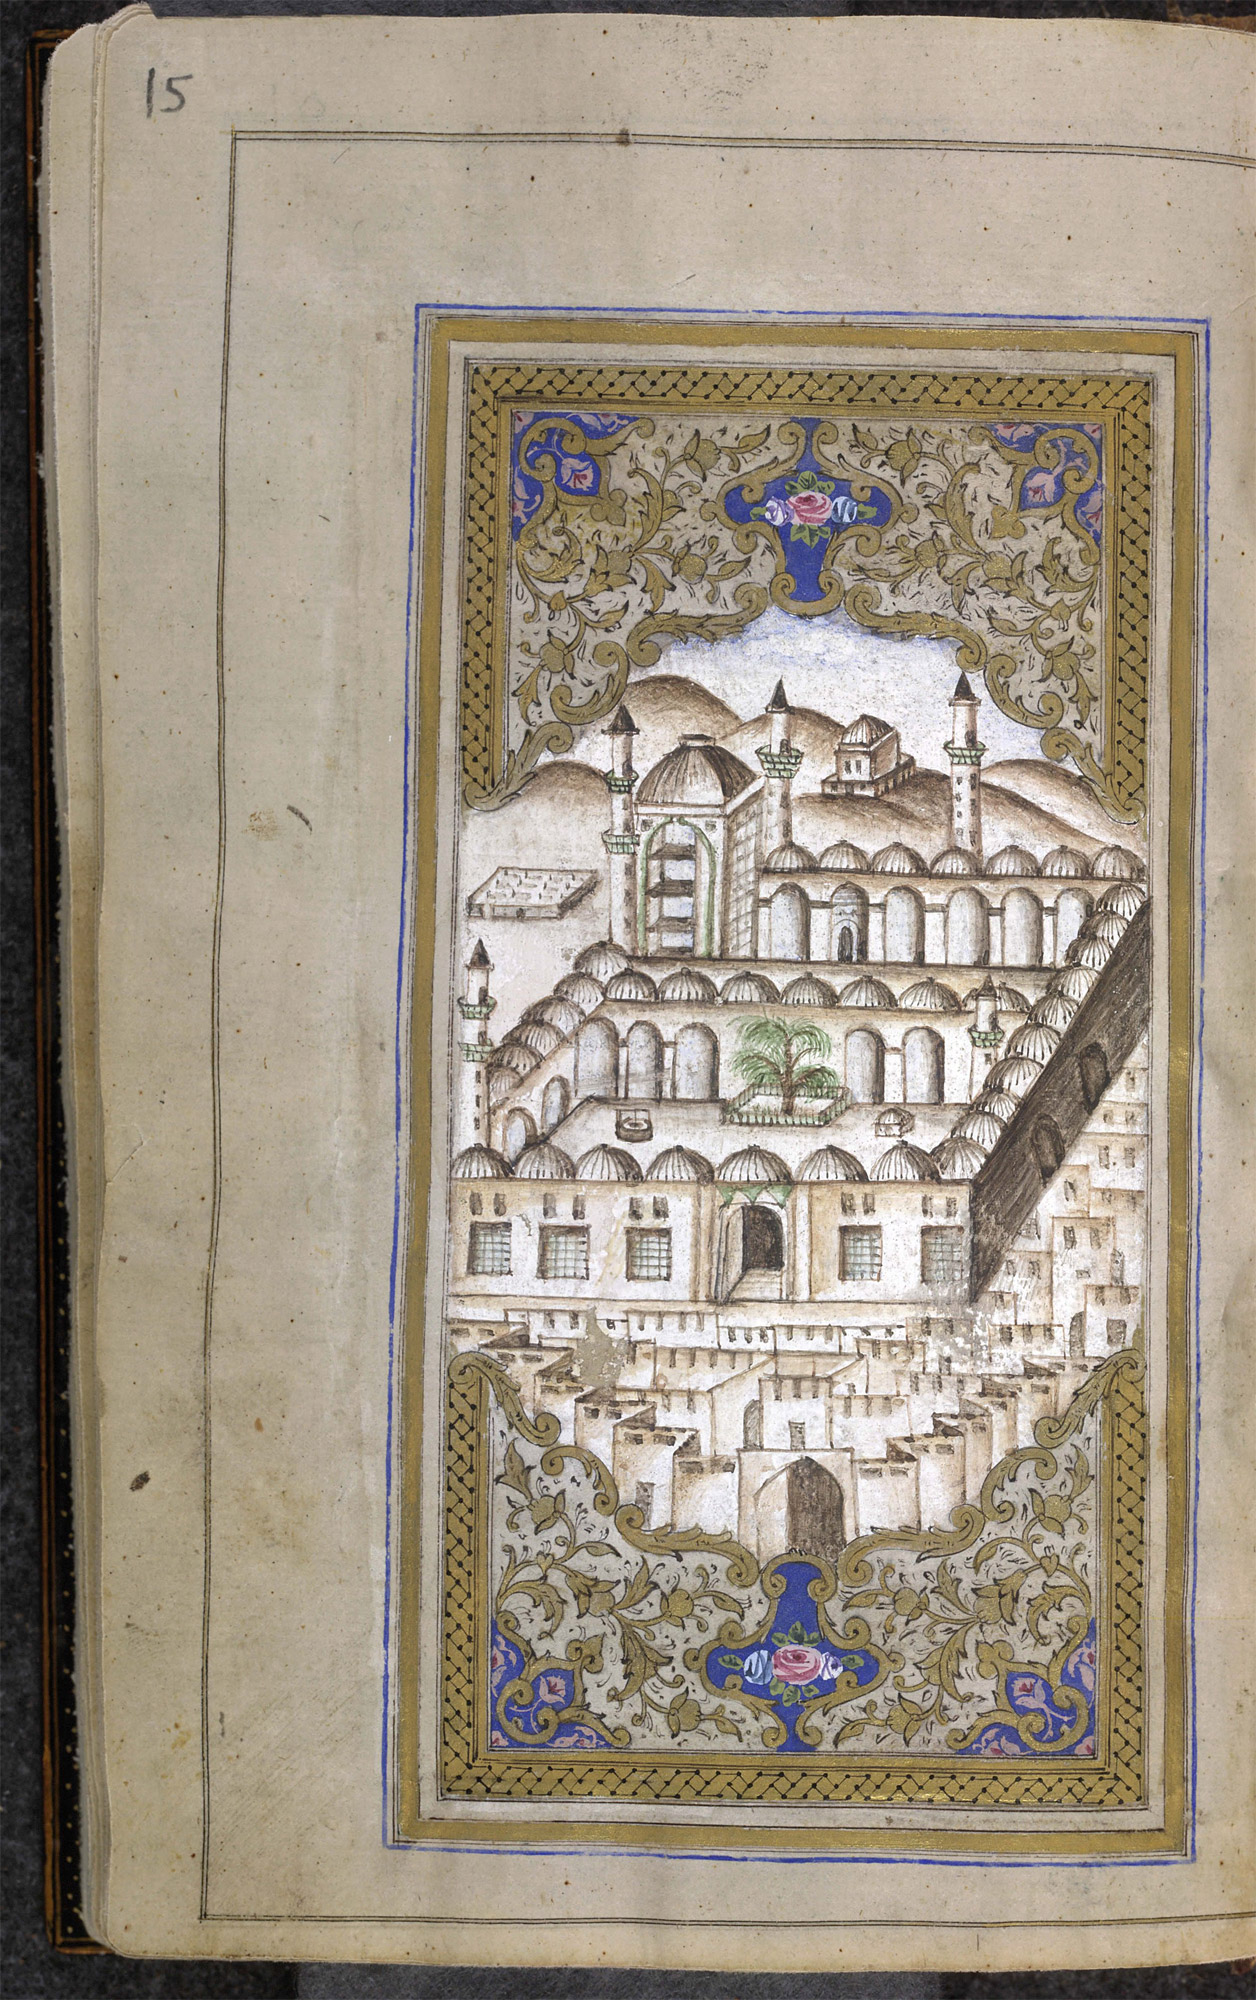 Depiction of the holy cities of Mecca and Medina - The